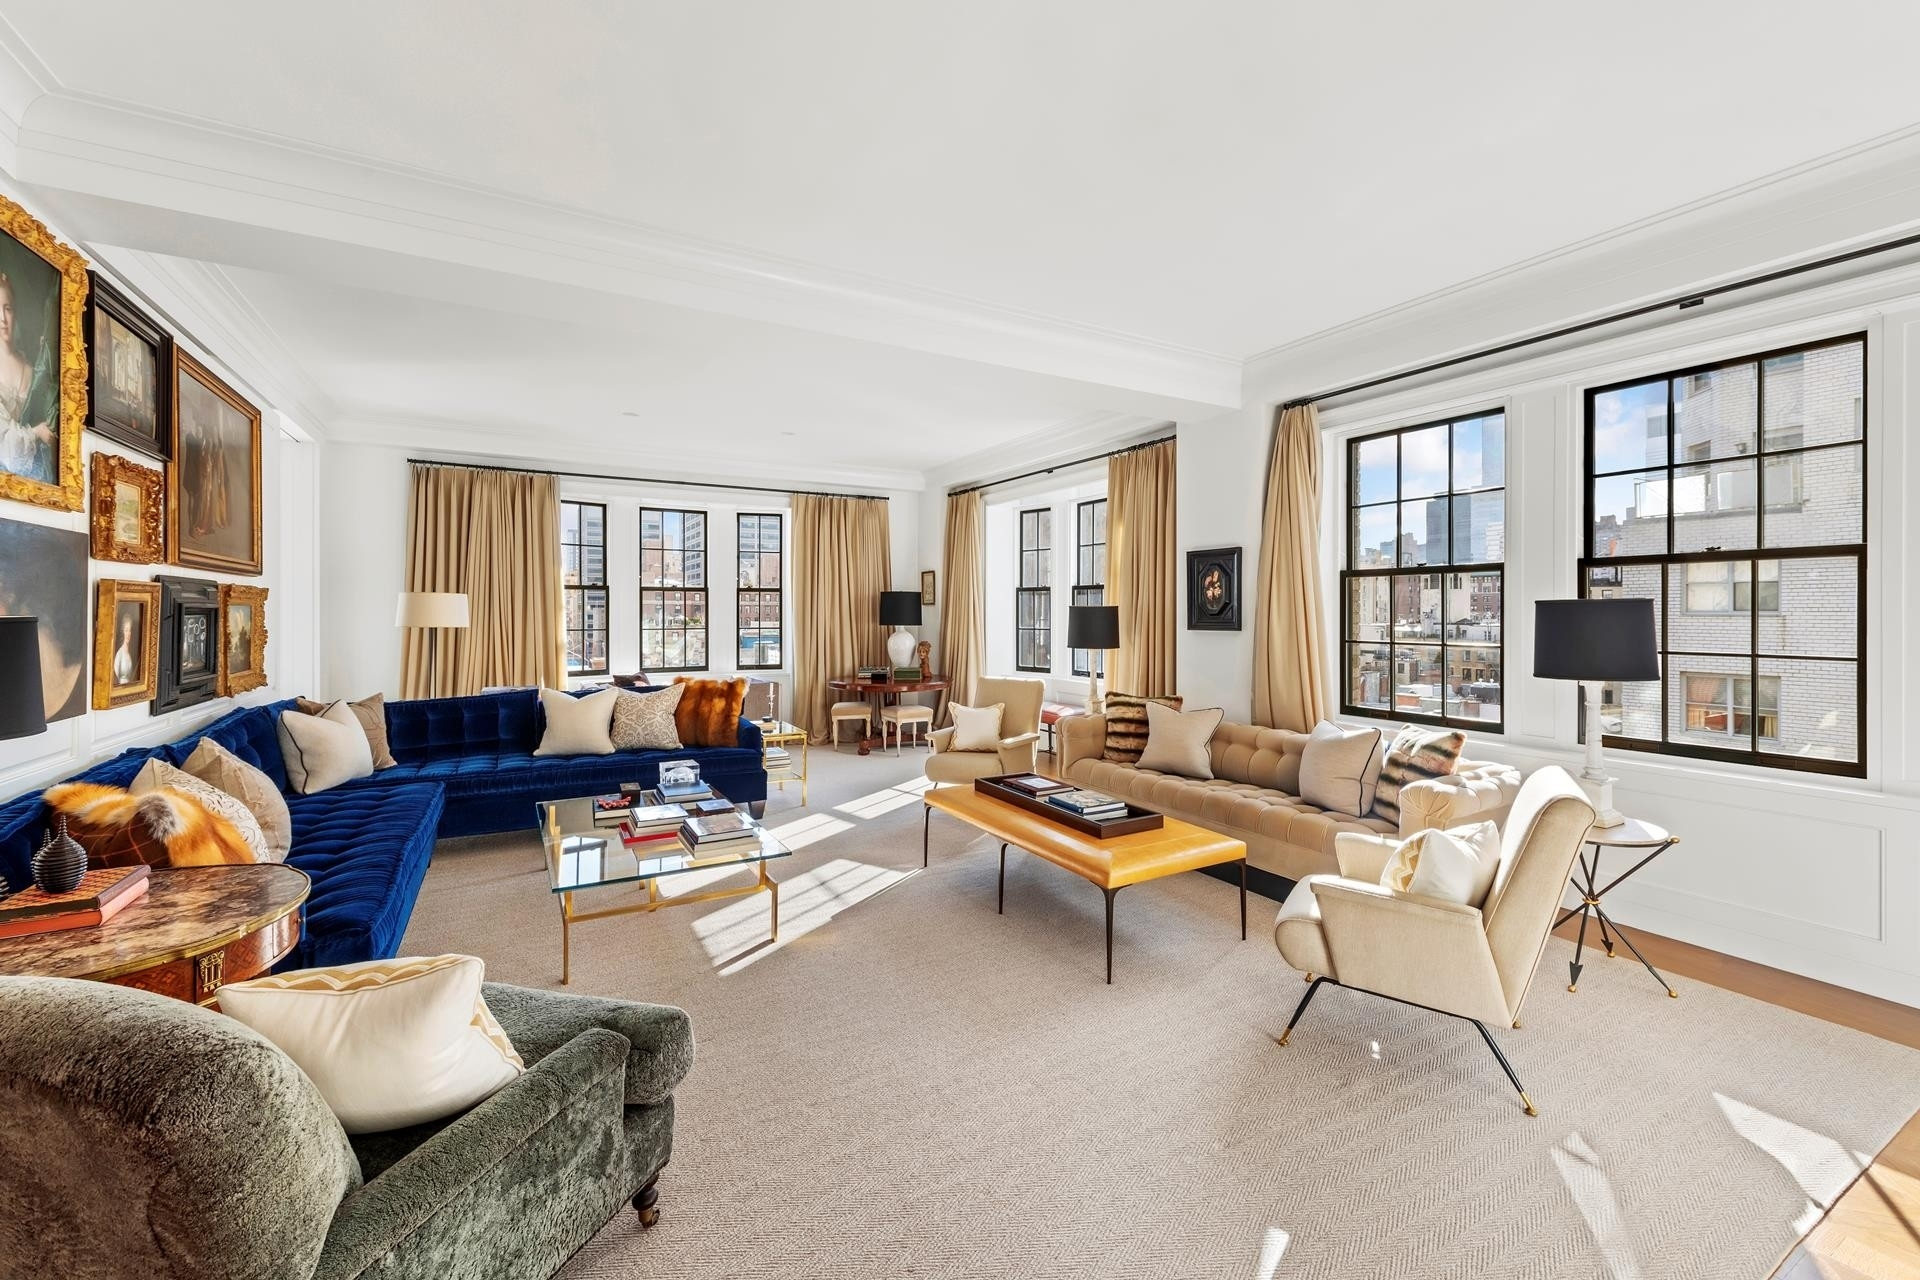 Condominium pour l Vente à The Marquand, 11 E 68TH ST , 9EAST Lenox Hill, New York, NY 10065